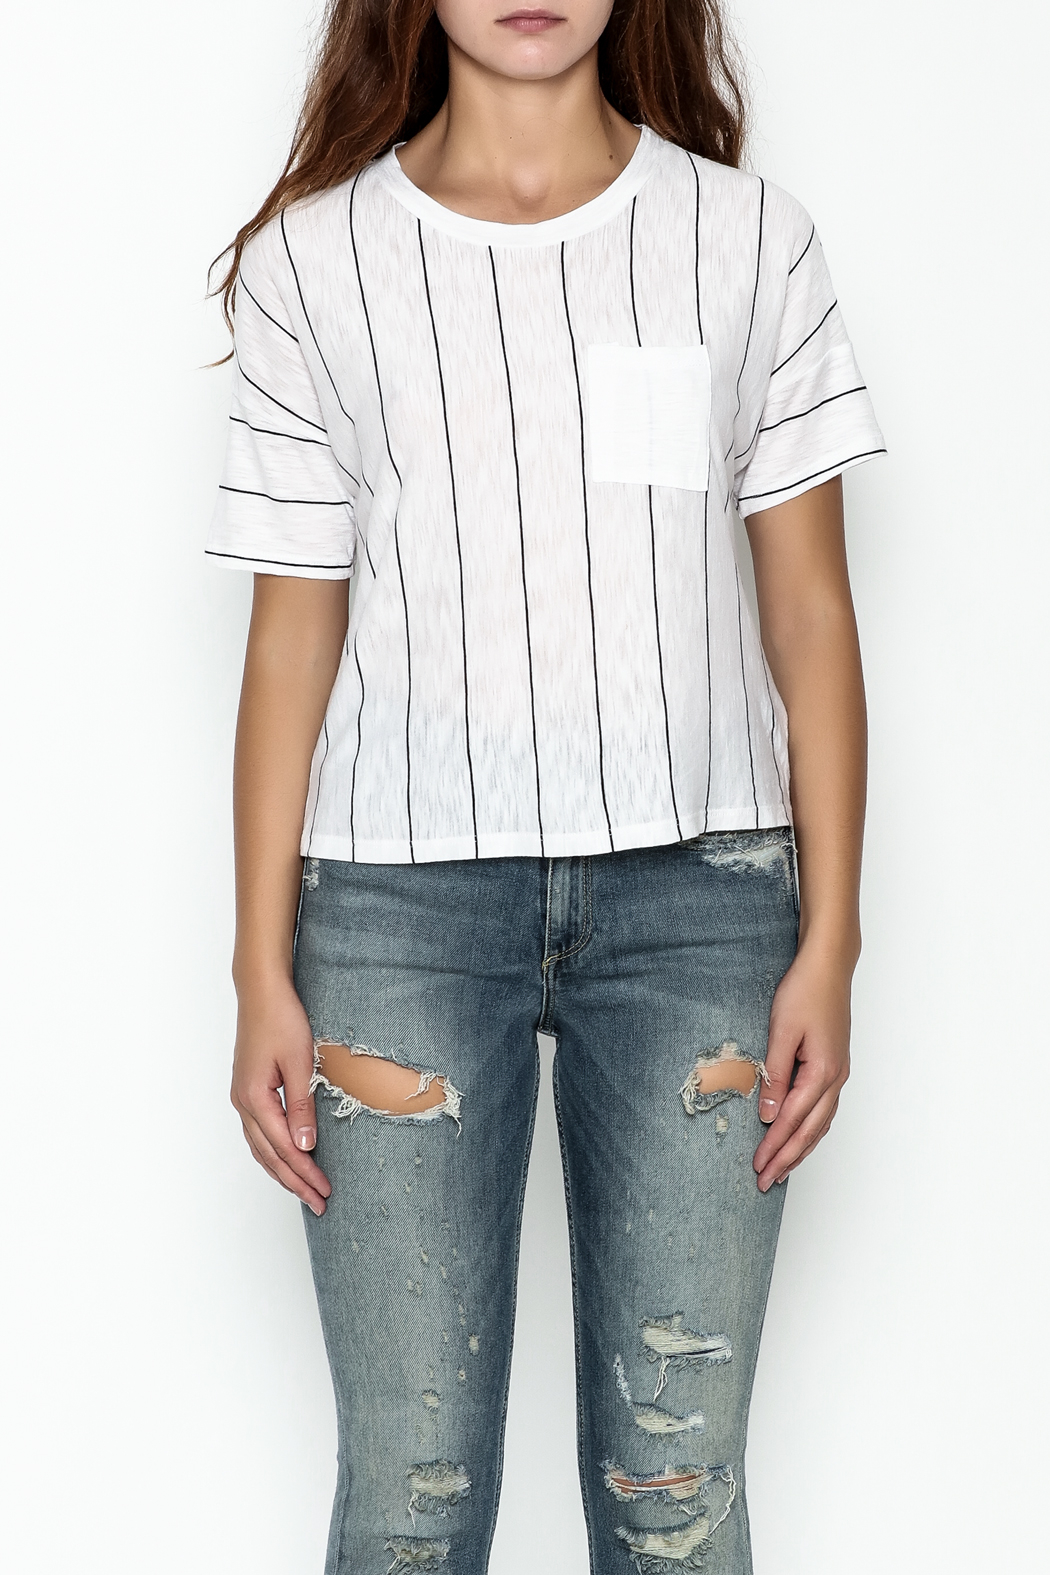 Michelle by Comune Striped Front Pocket Tee - Front Full Image